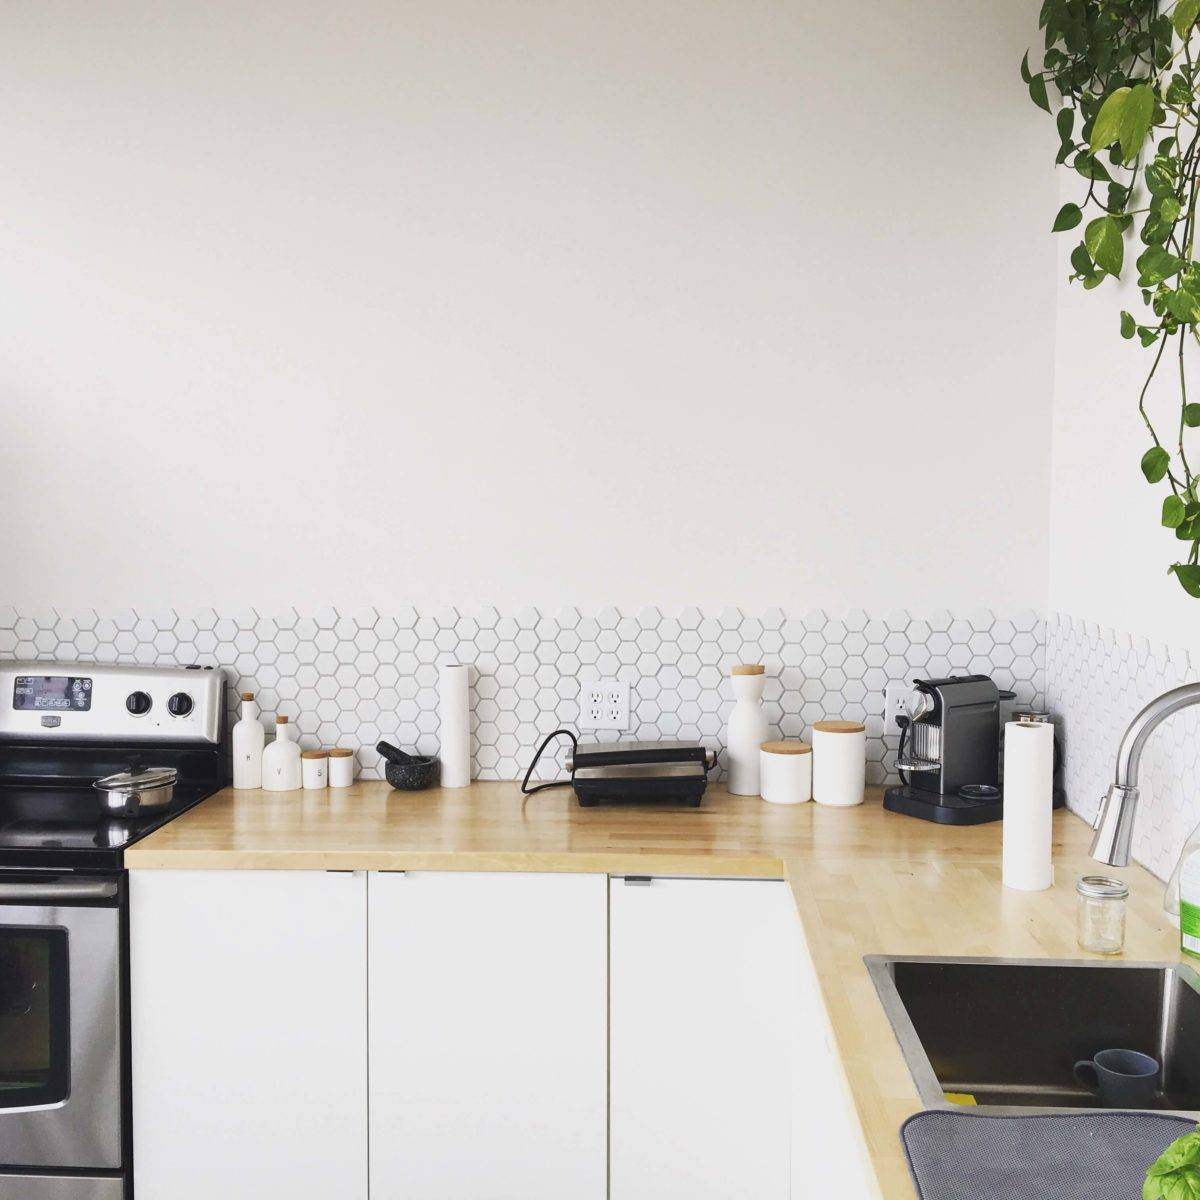 spring cleaning tips and tricks for the kitchen